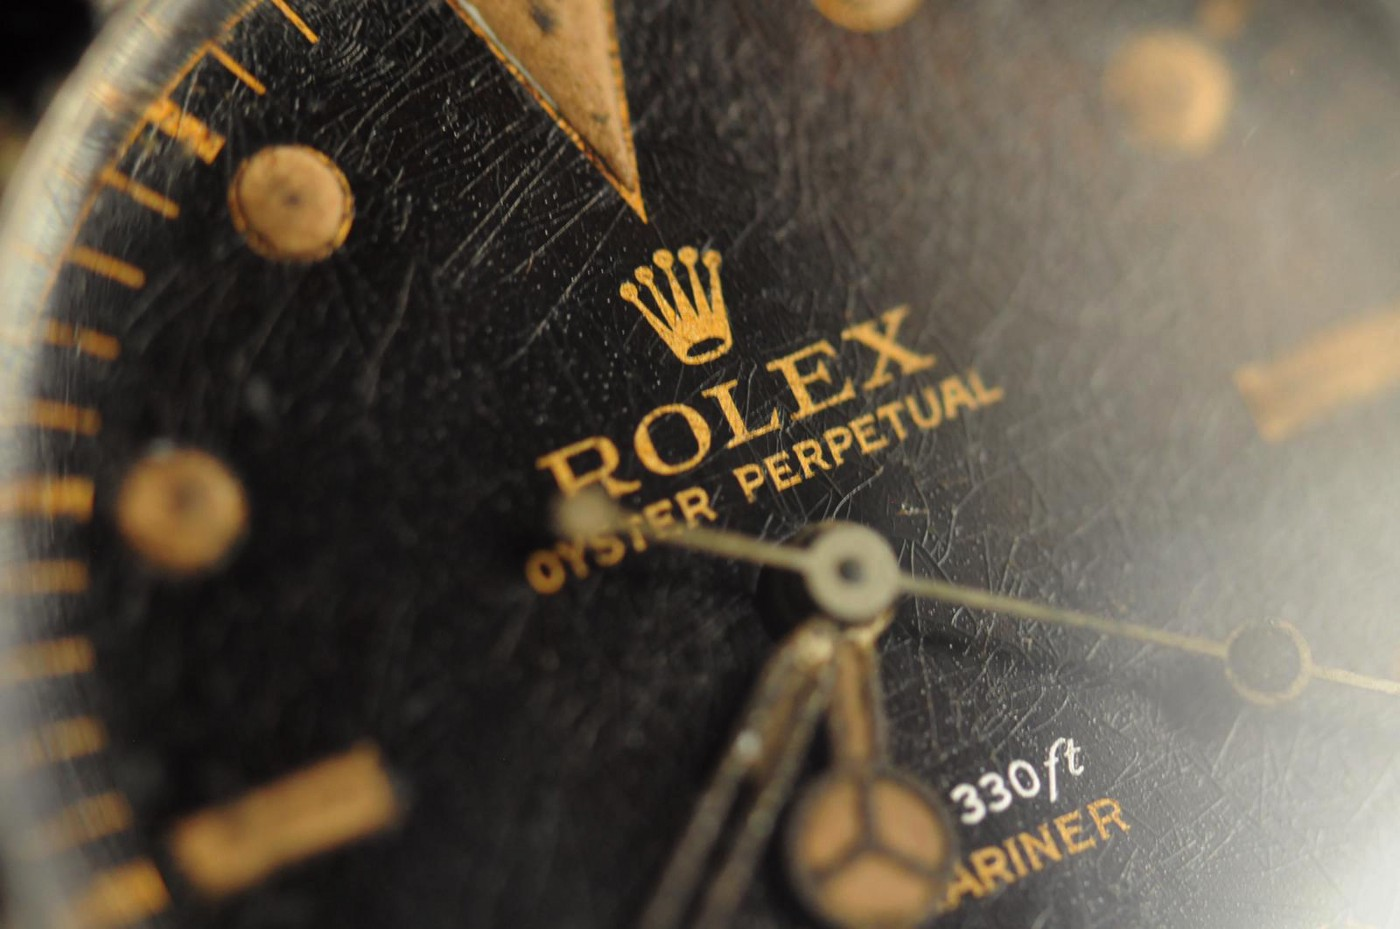 Old Rolex dial macro with gilt logo and spider (cracked) texture